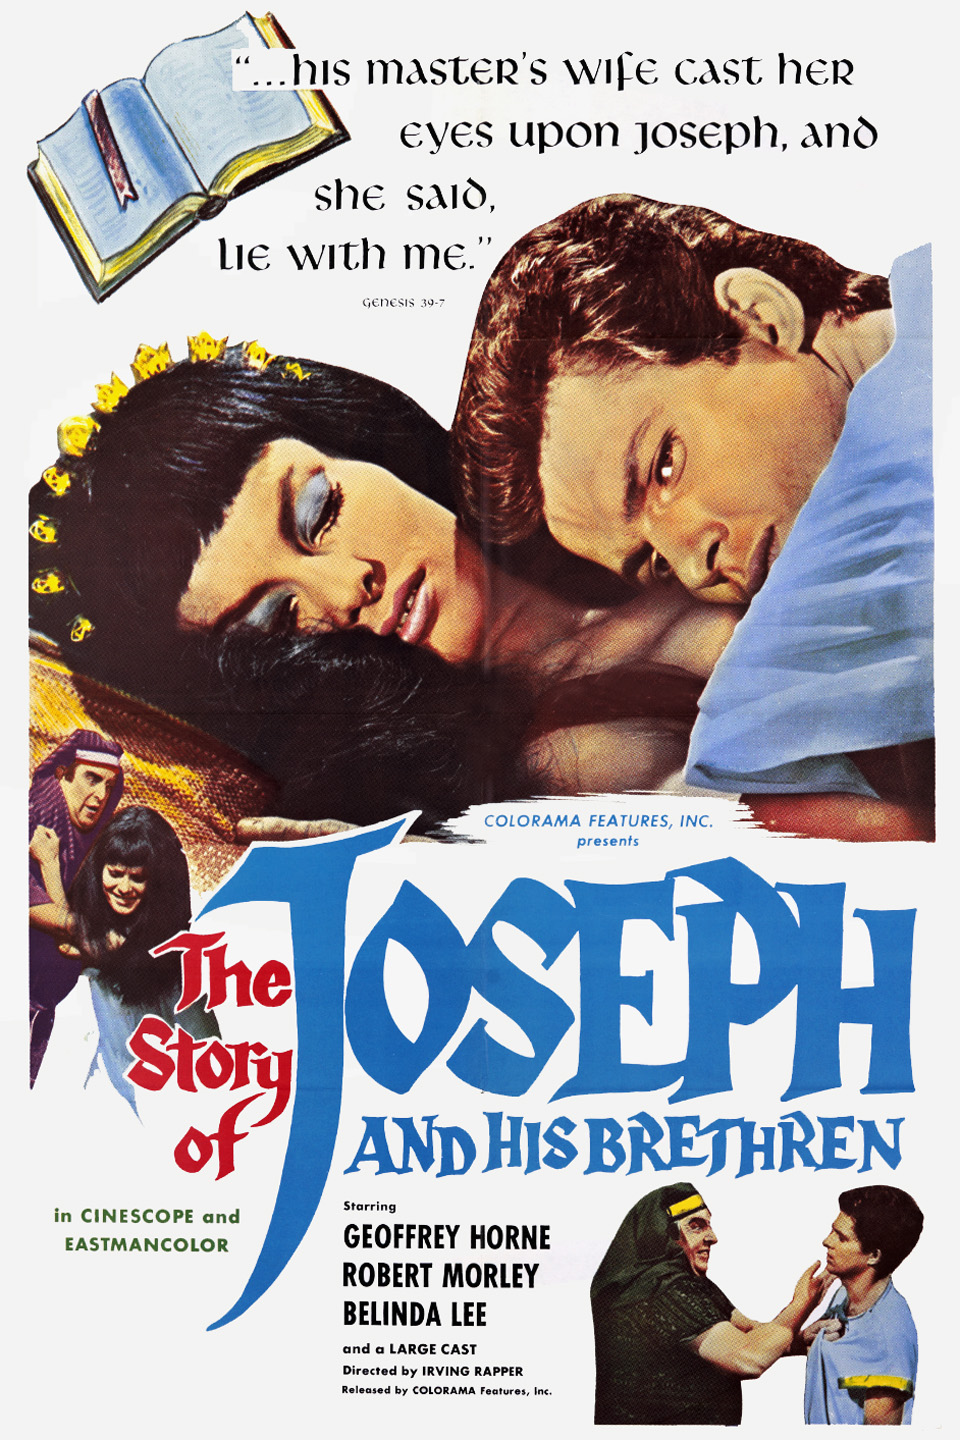 The Story of Joseph and His Brethren [1961]